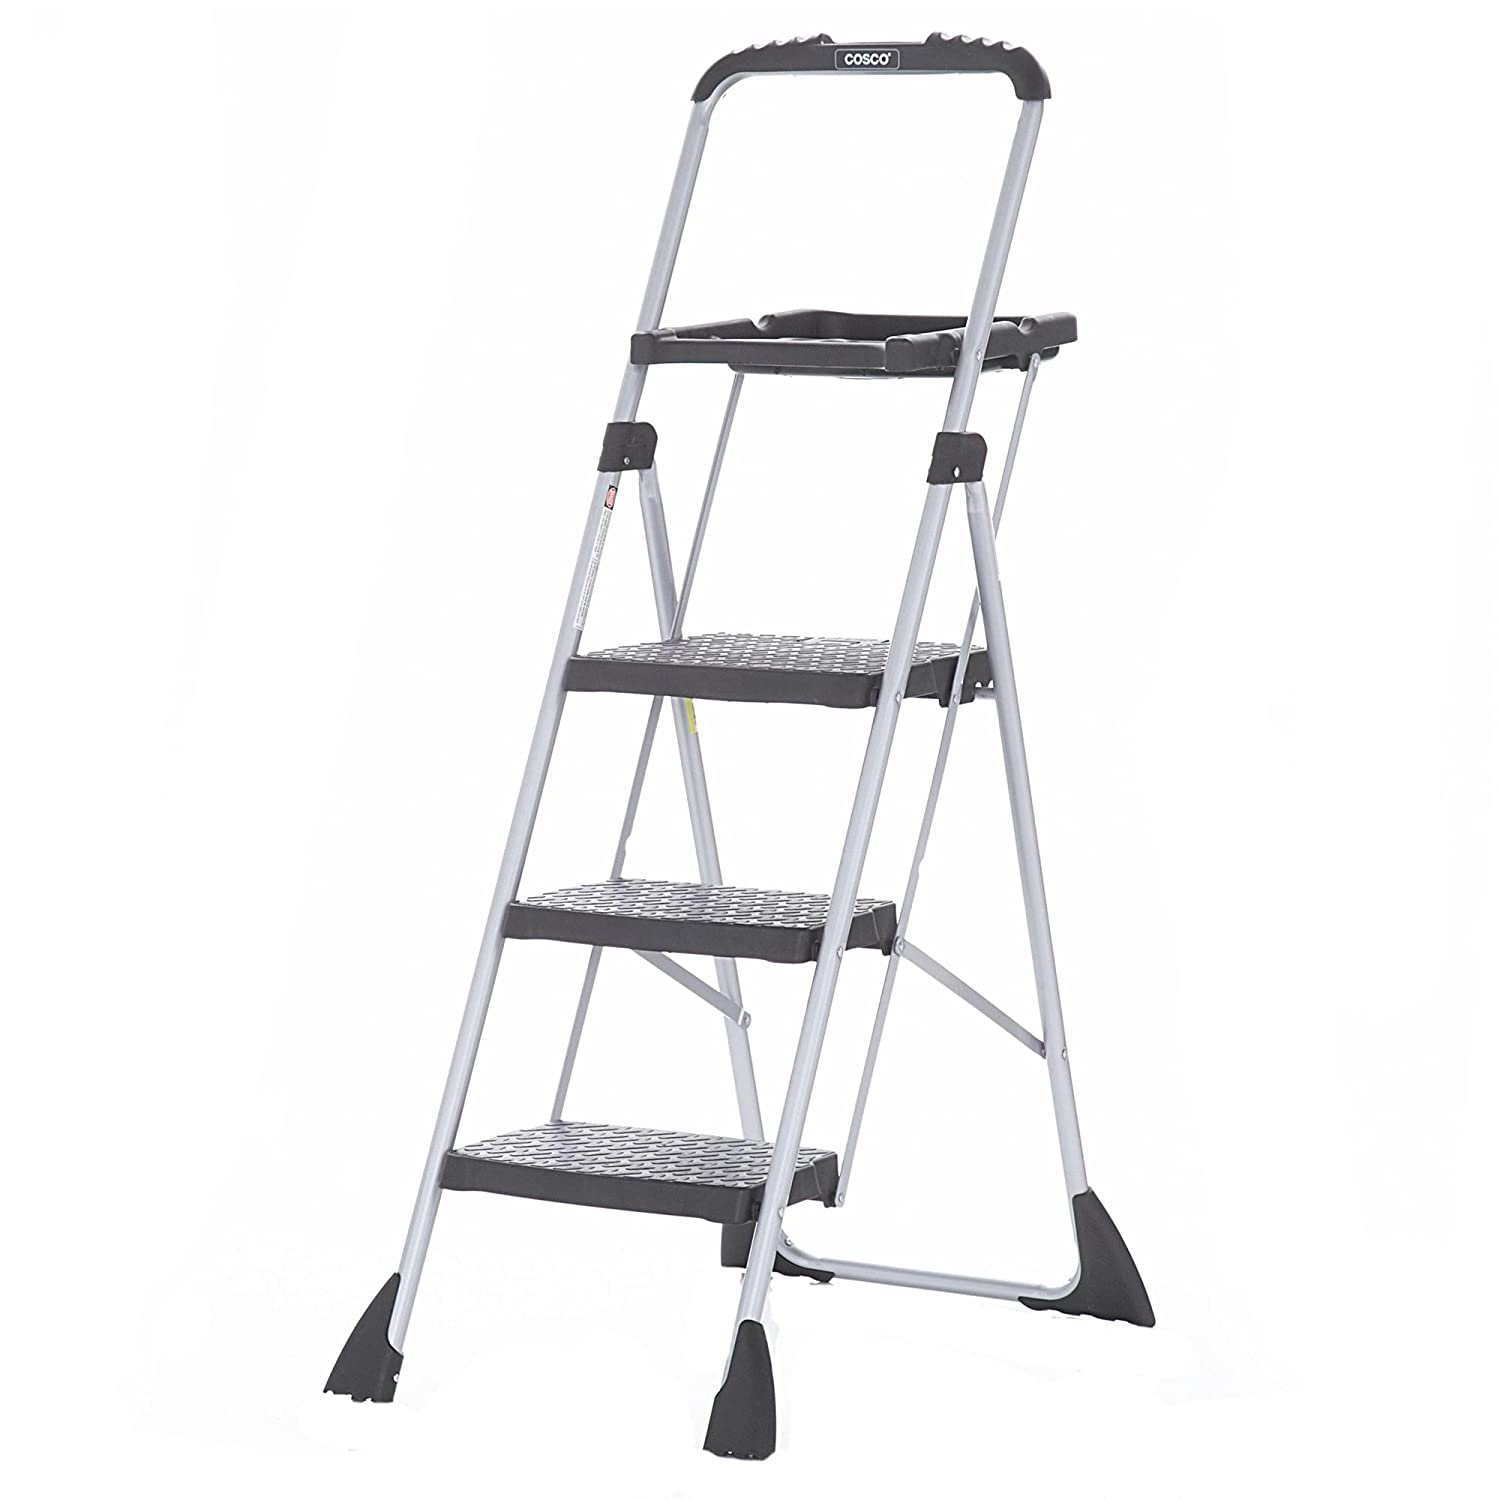 Paint Step Ladder 3-step Step Ladder